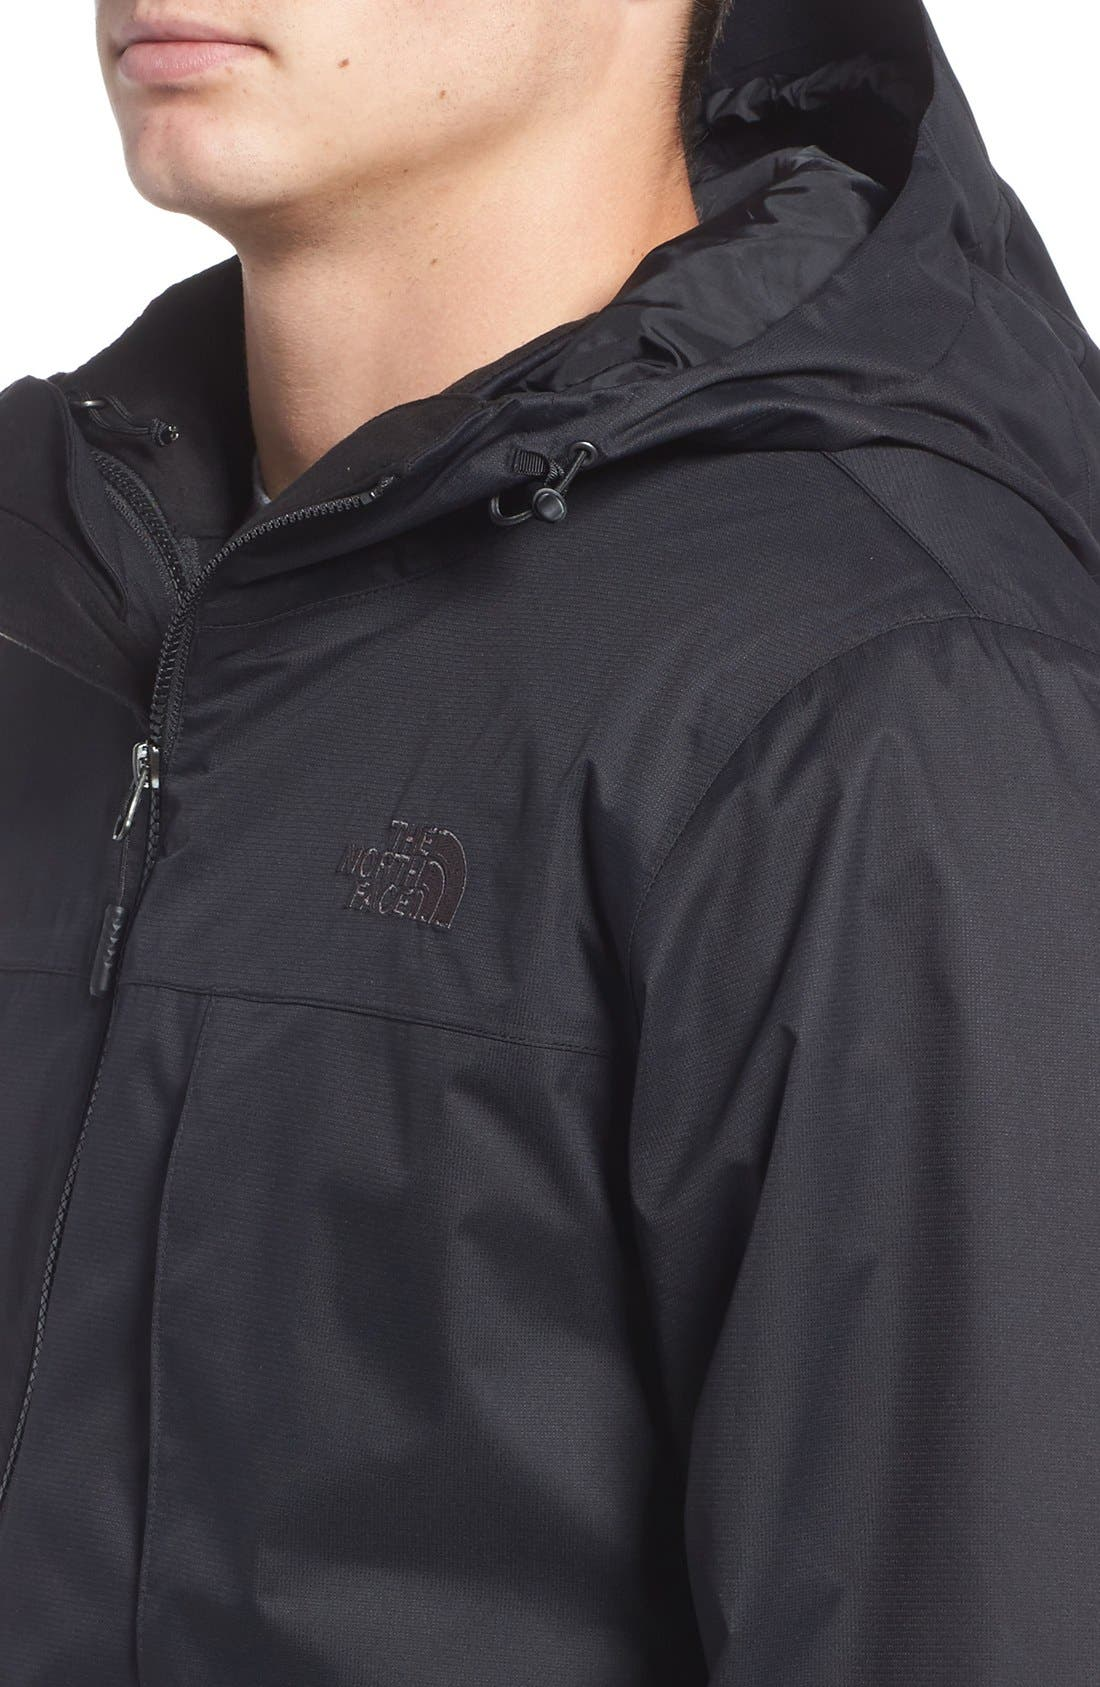 'Arrowood' TriClimate<sup>®</sup> 3-in-1 Jacket,                             Alternate thumbnail 56, color,